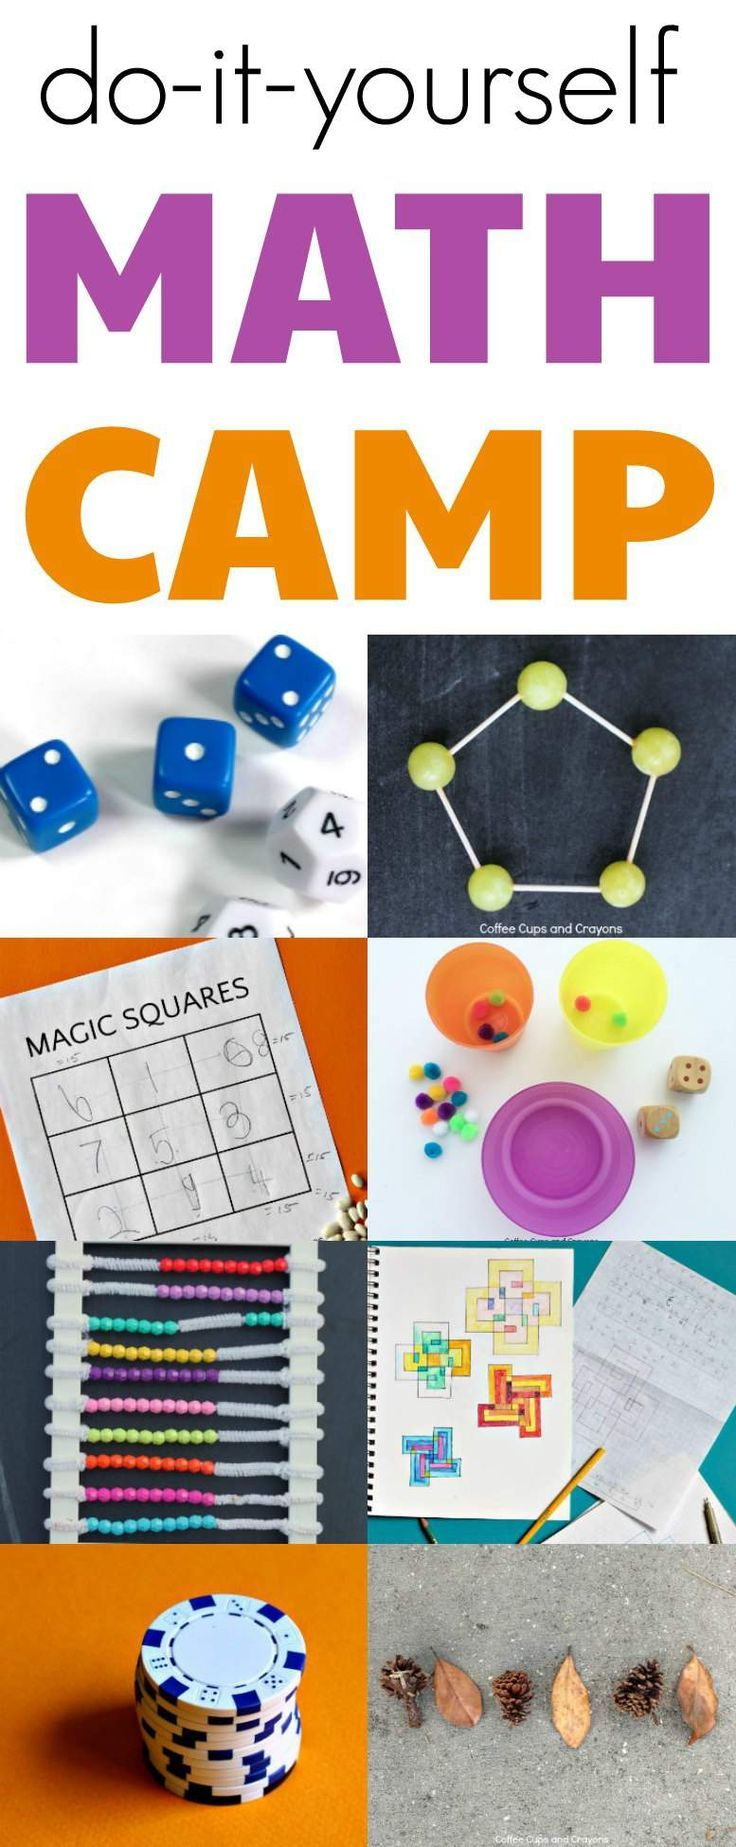 Diy summer math camp budget friendly activity plans proyectos complete activity lesson plans for a budget friendly fun diy summer math camp for kids solutioingenieria Gallery